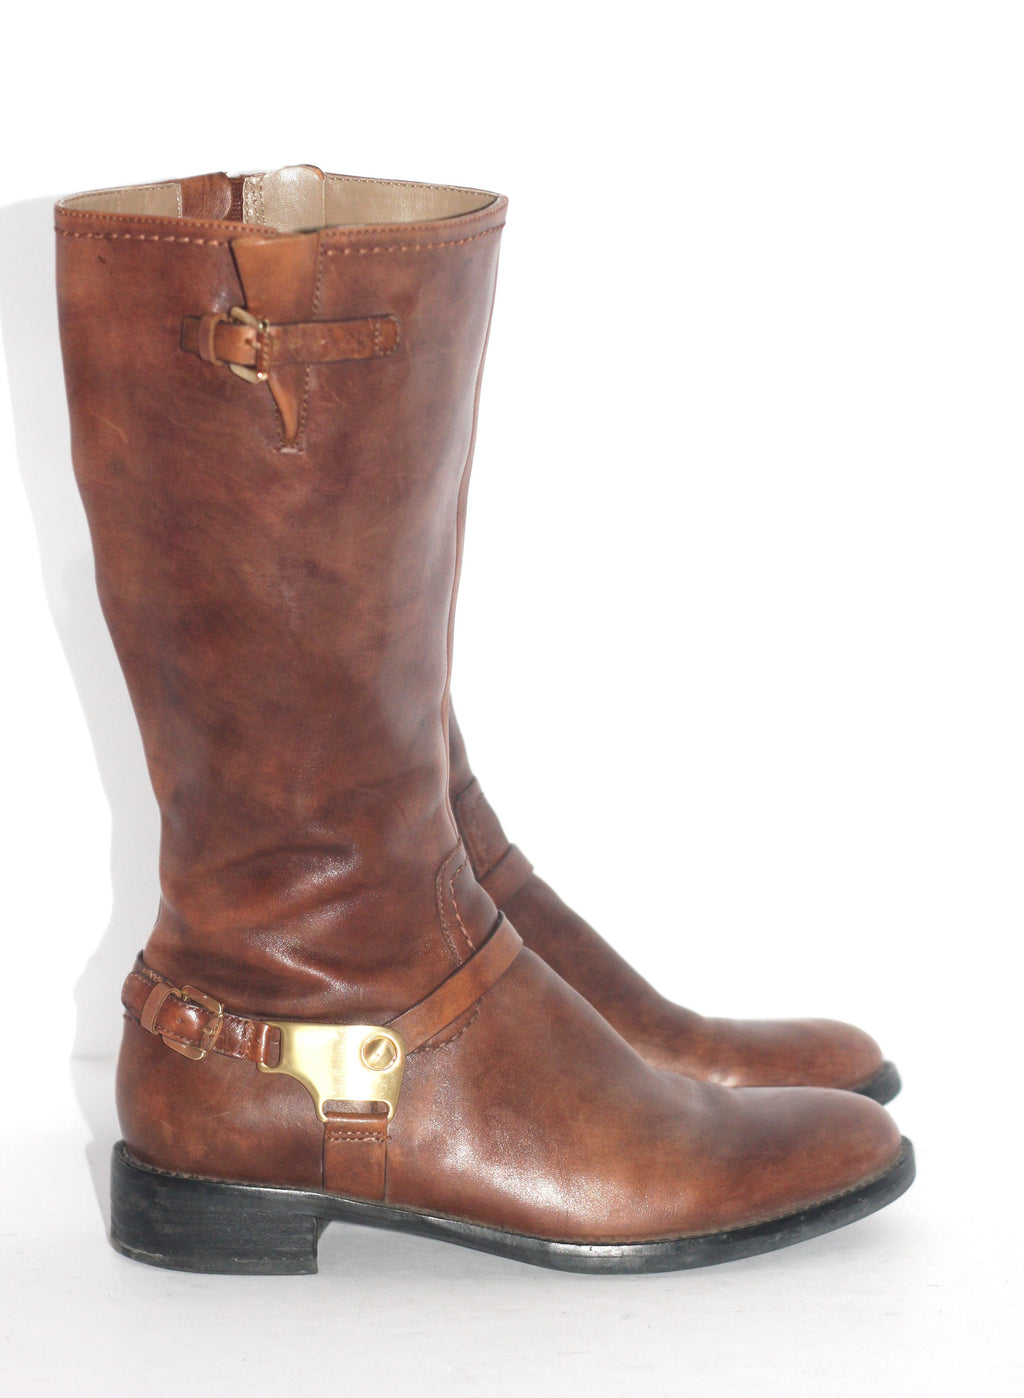 ECCO Brown Almond Toe Mid Shaft Boots - Joyce's Closet  - 1